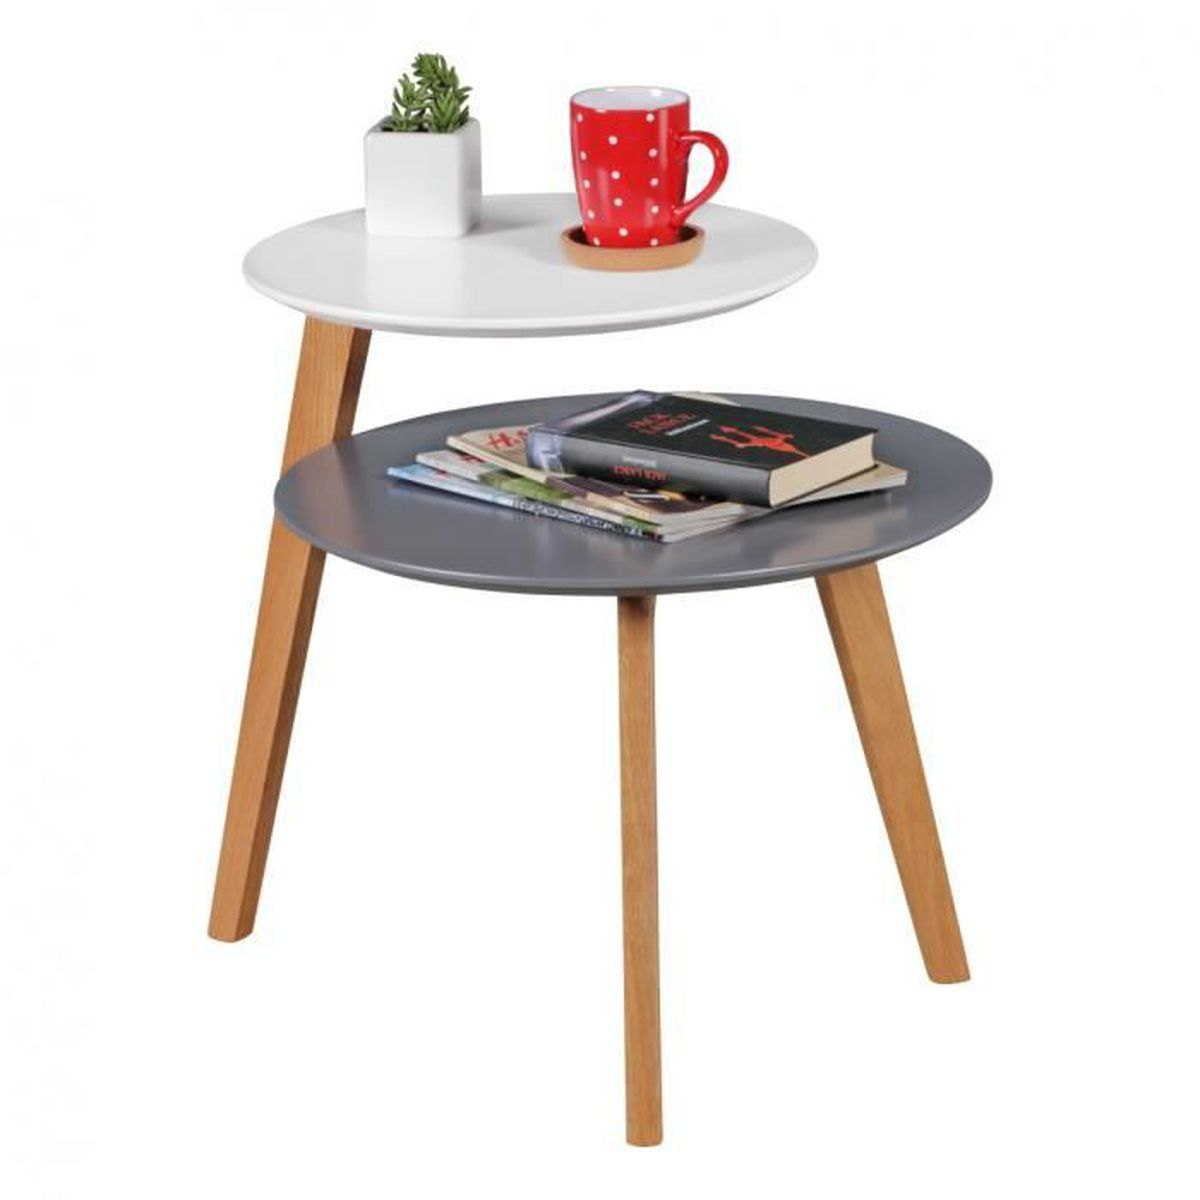 100 table basse scandinave pas cher 2 tables basses for Table basse scandinave le bon coin